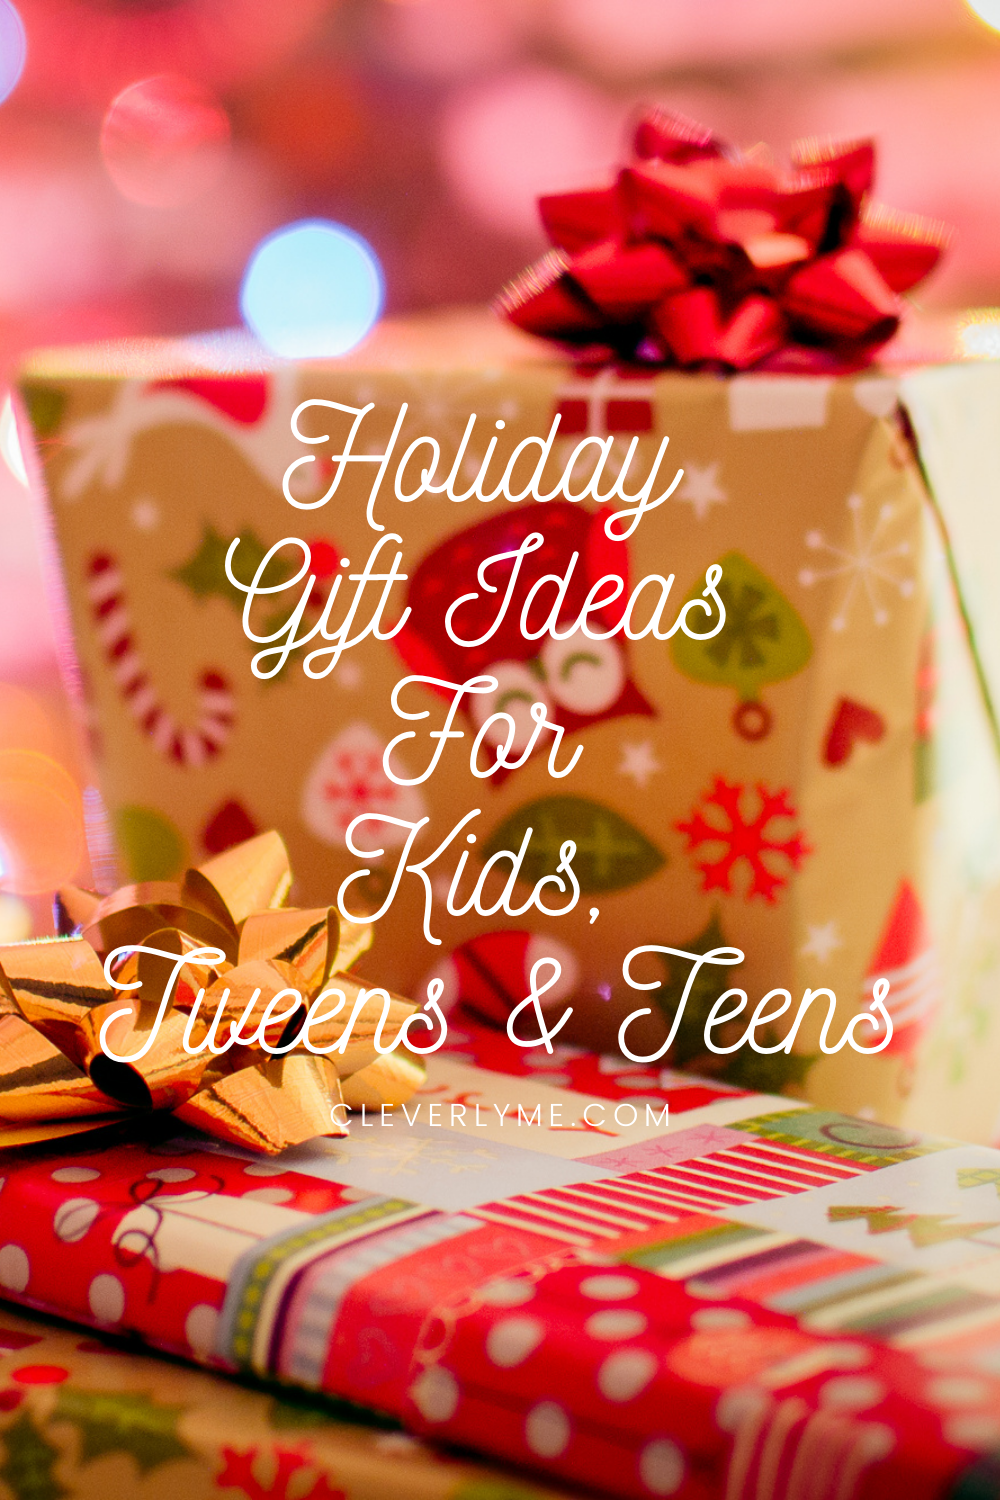 Find the best Holiday Gift Ideas For Kids, Tweens and Teens 2020 at CleverlyMe.com